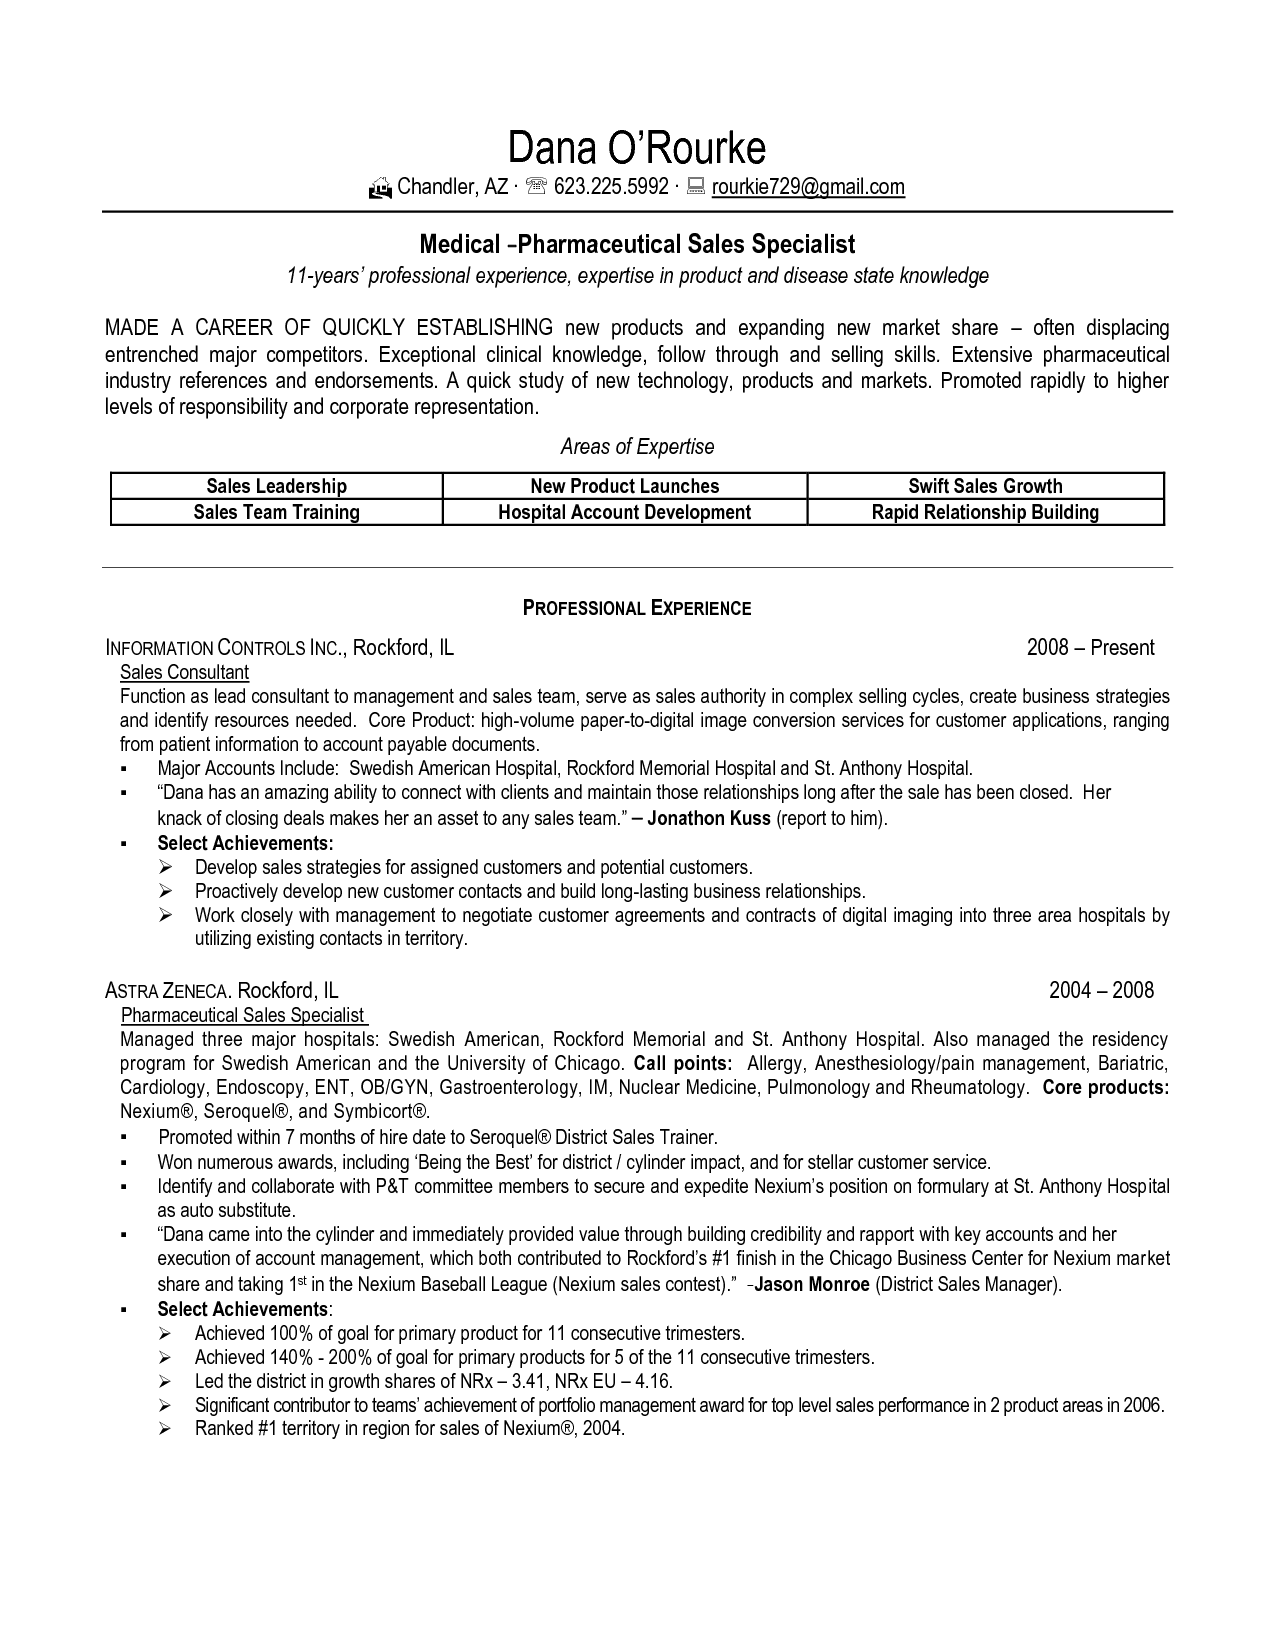 Sample Resume For Pharmaceutical Industry Sales Resume Examples Sales Resume Pharmaceutical Sales